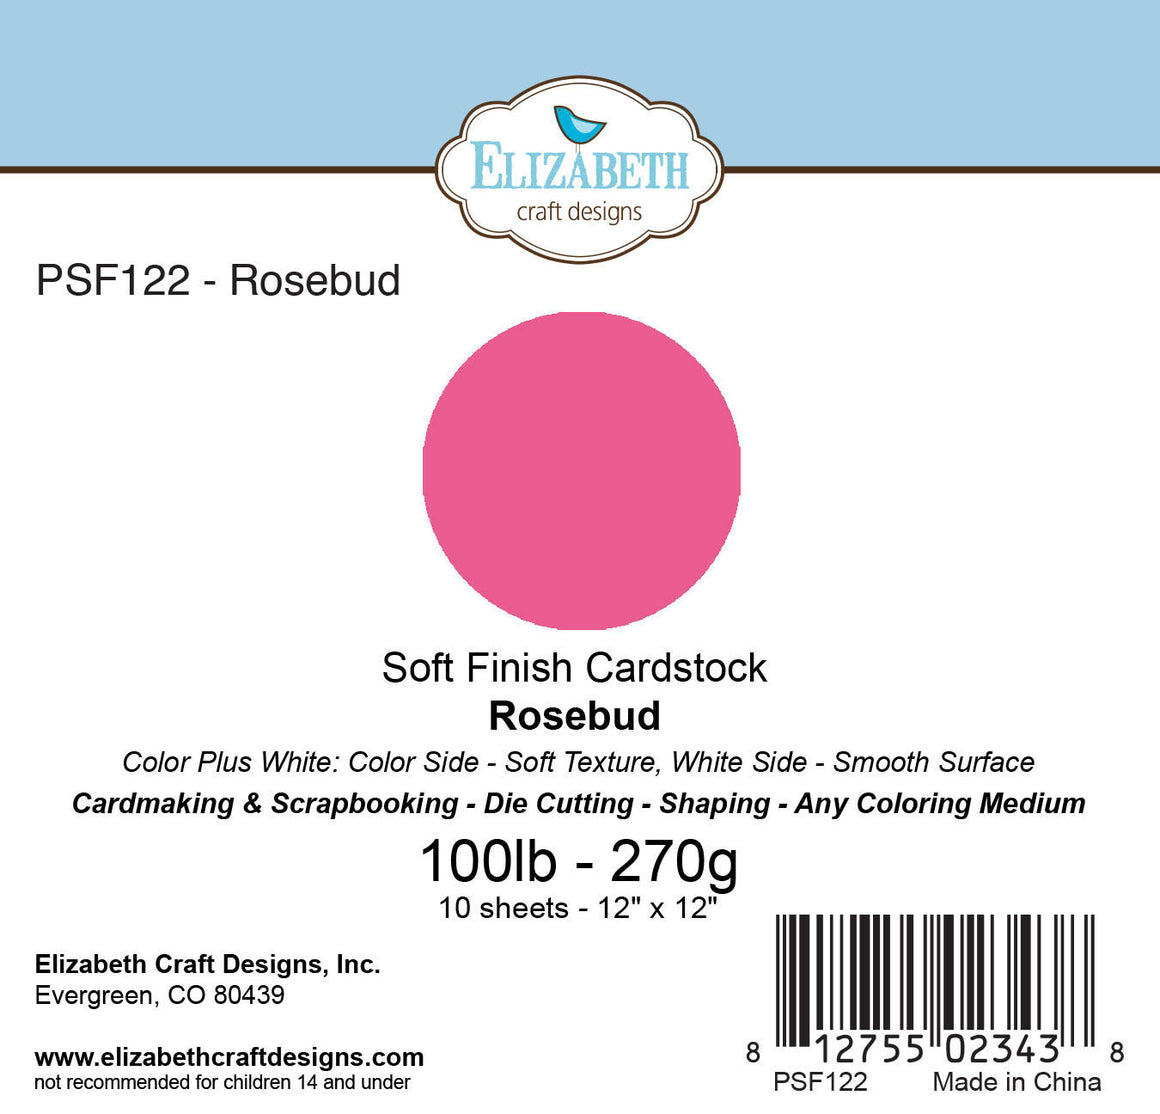 Soft Finish Cardstock, Rosebud